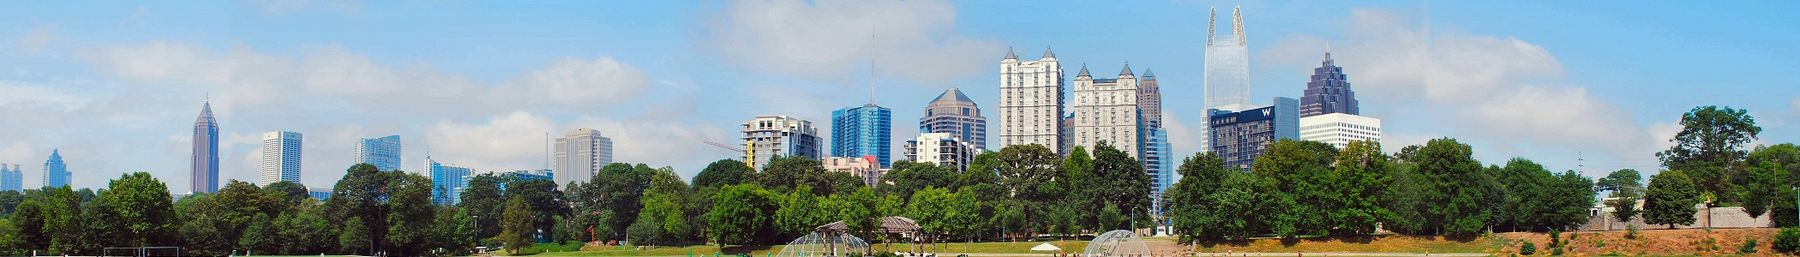 Atlanta skyline from Piedmont Park banner.jpg